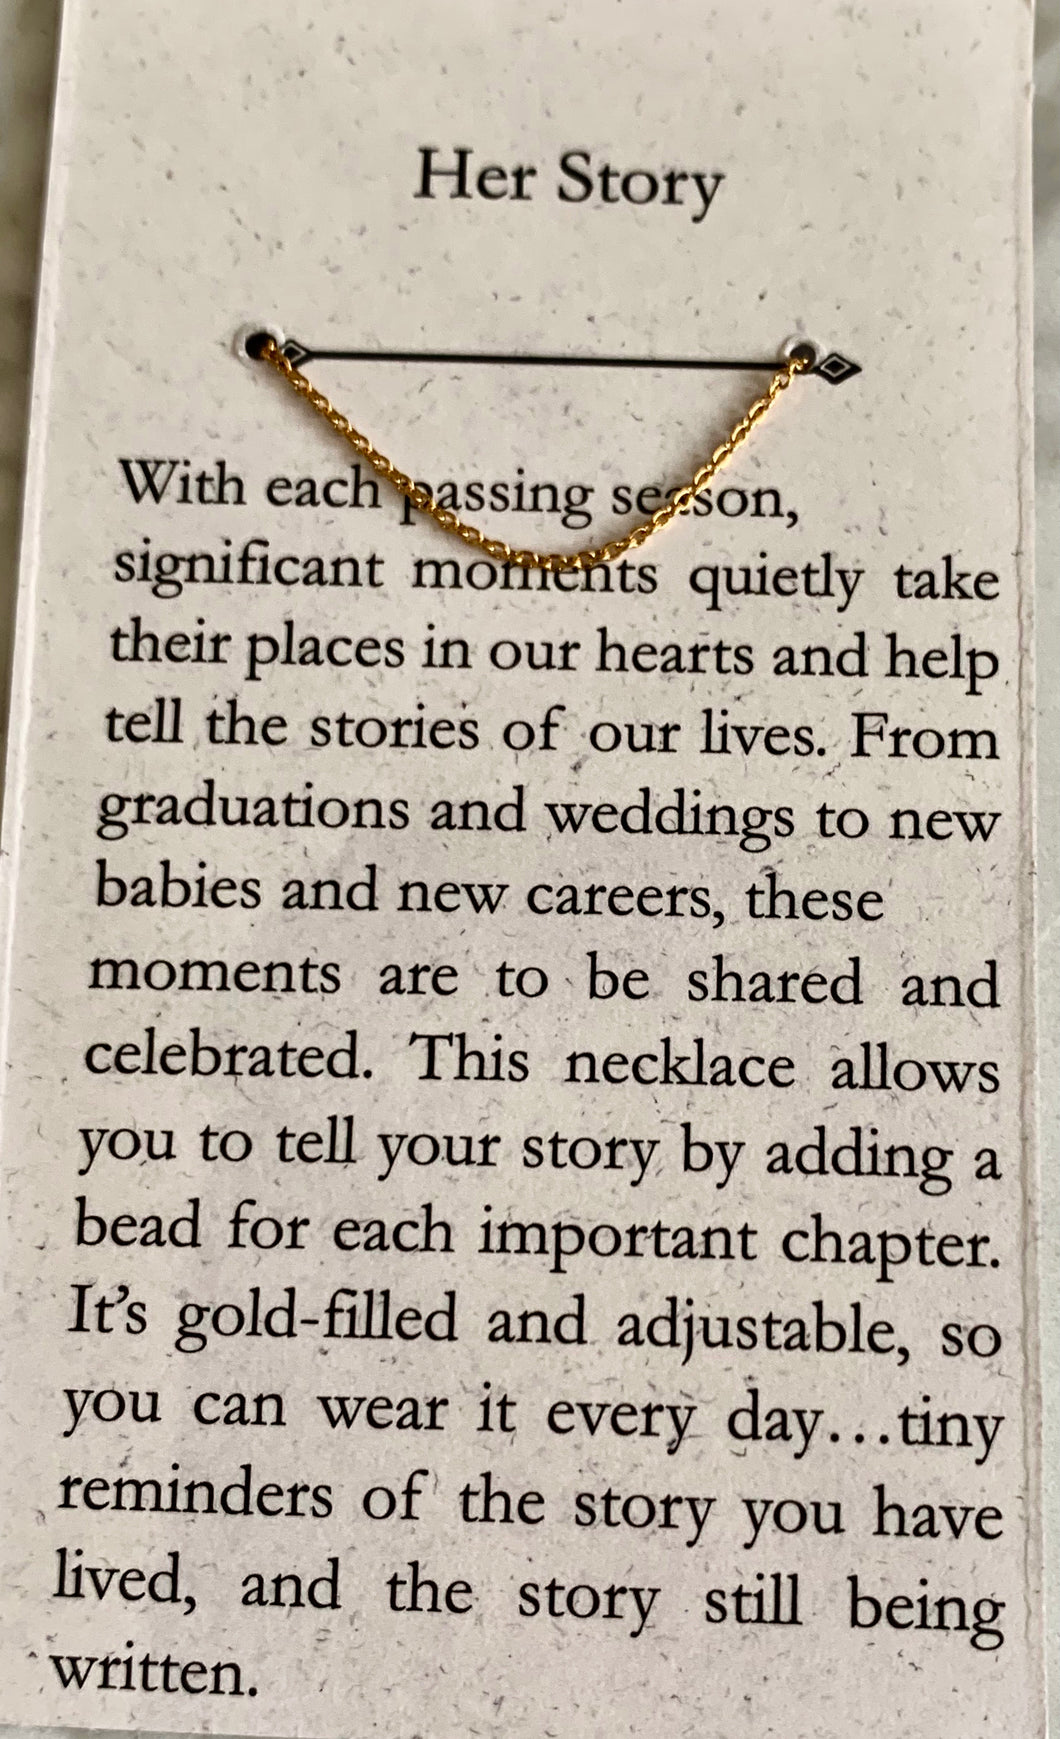 Her Story Necklace